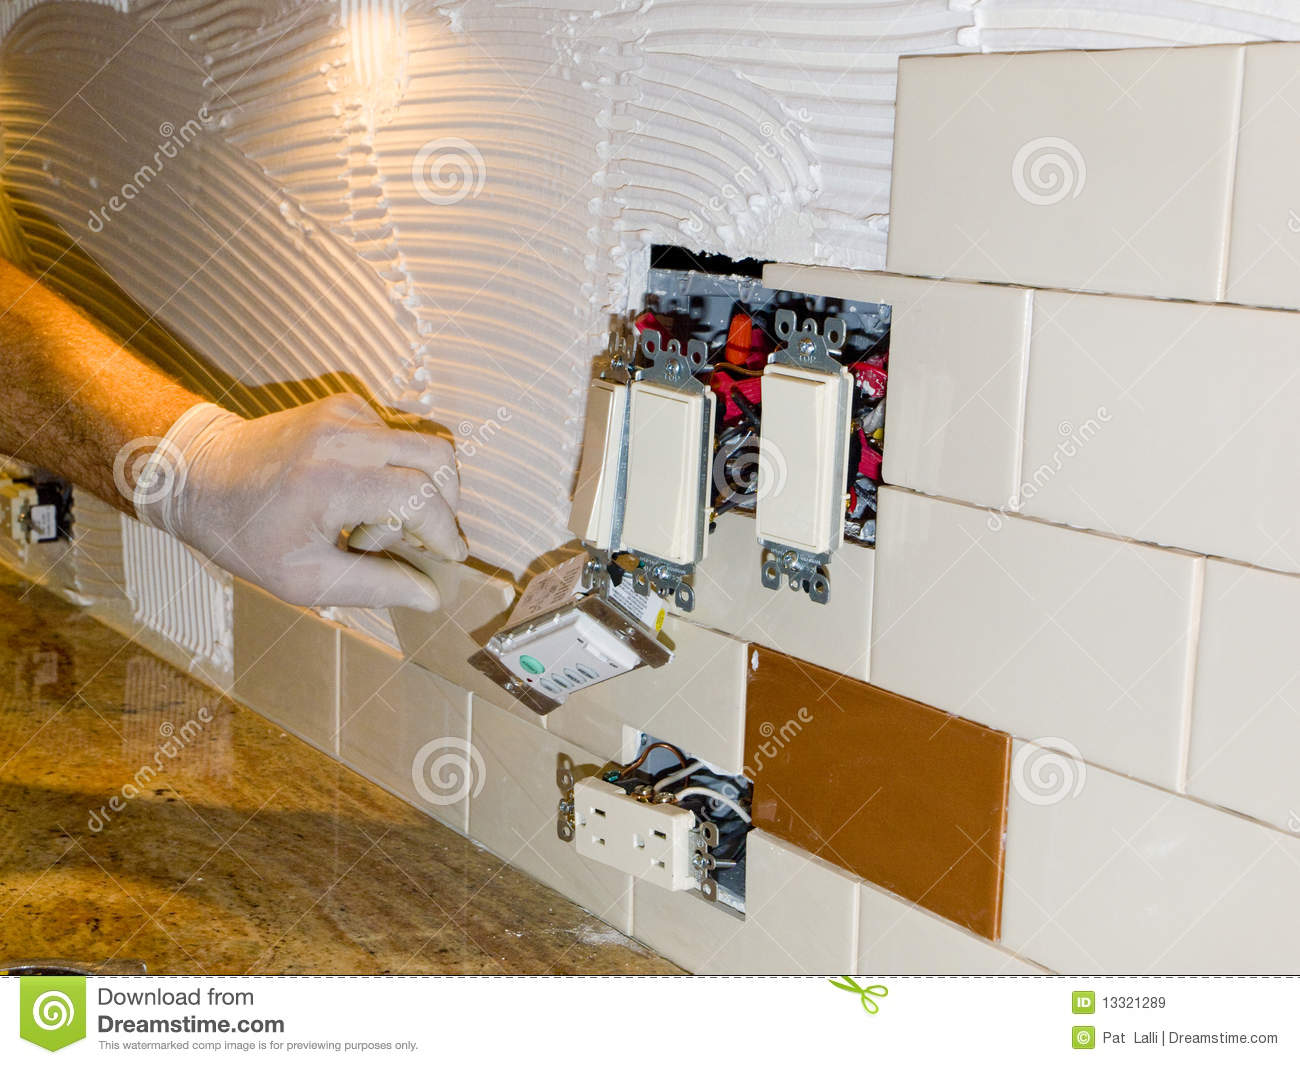 superb how to put kitchen tiles ceramic tile installation on kitchen backsplash 10 royalty free stock